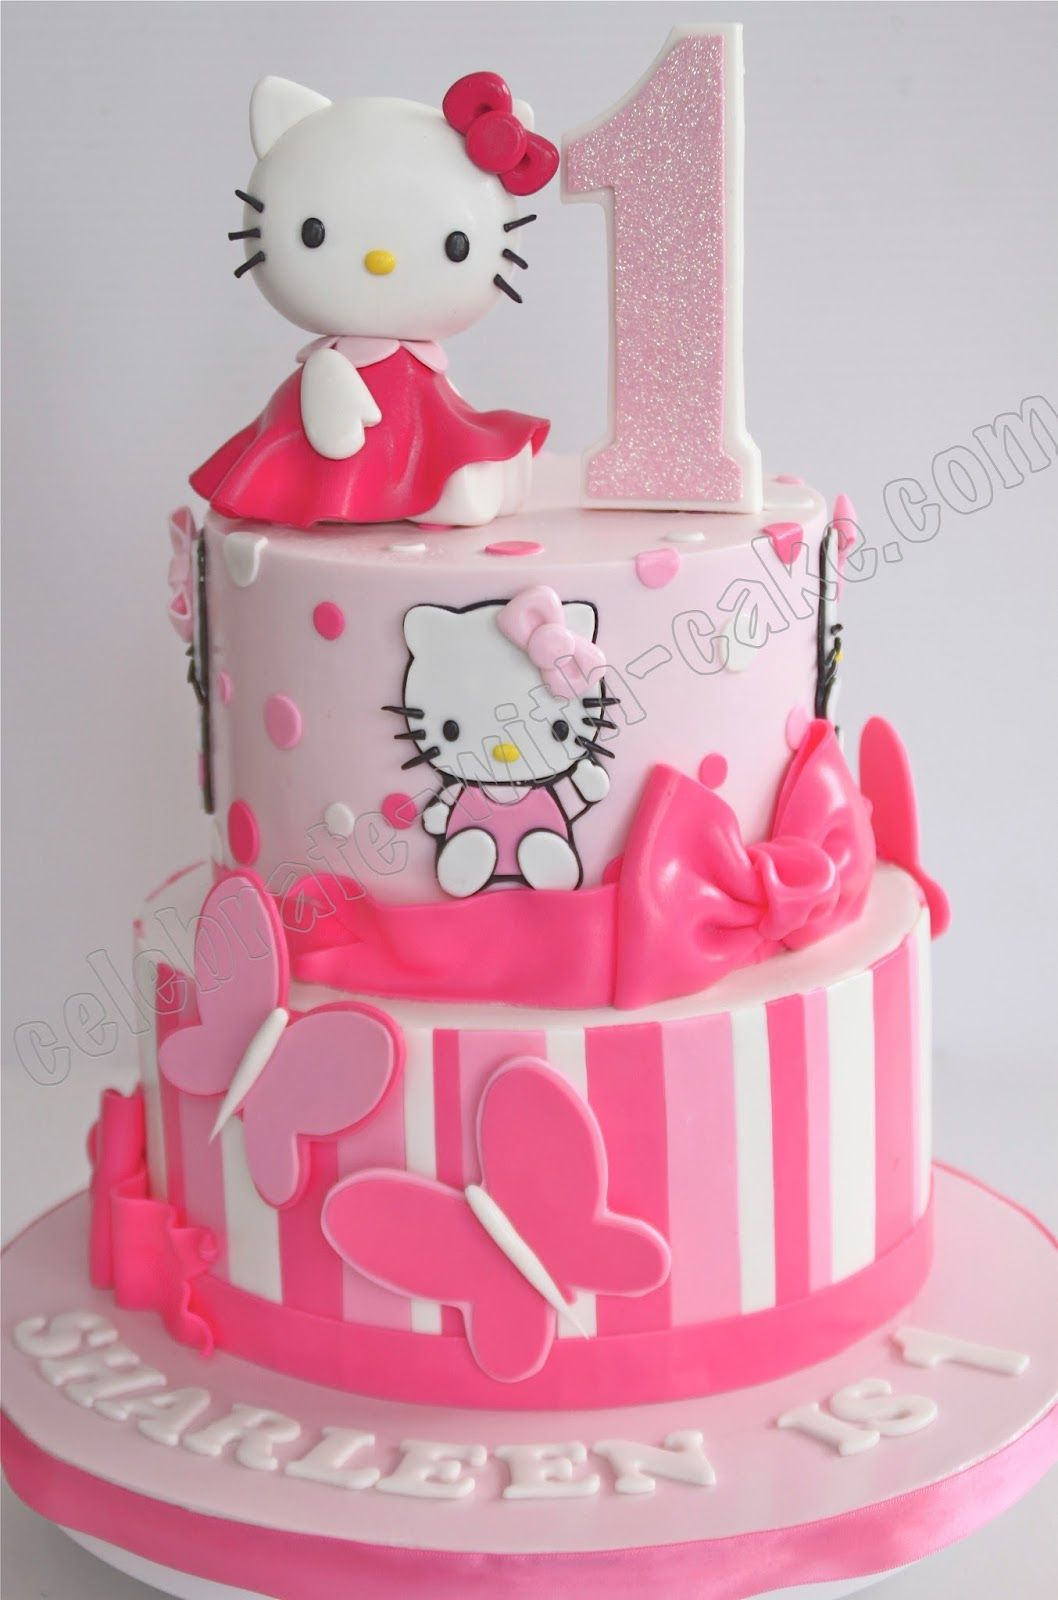 Celebrate With Cake 1st Birthday Hello Kitty Tier Cake Hello